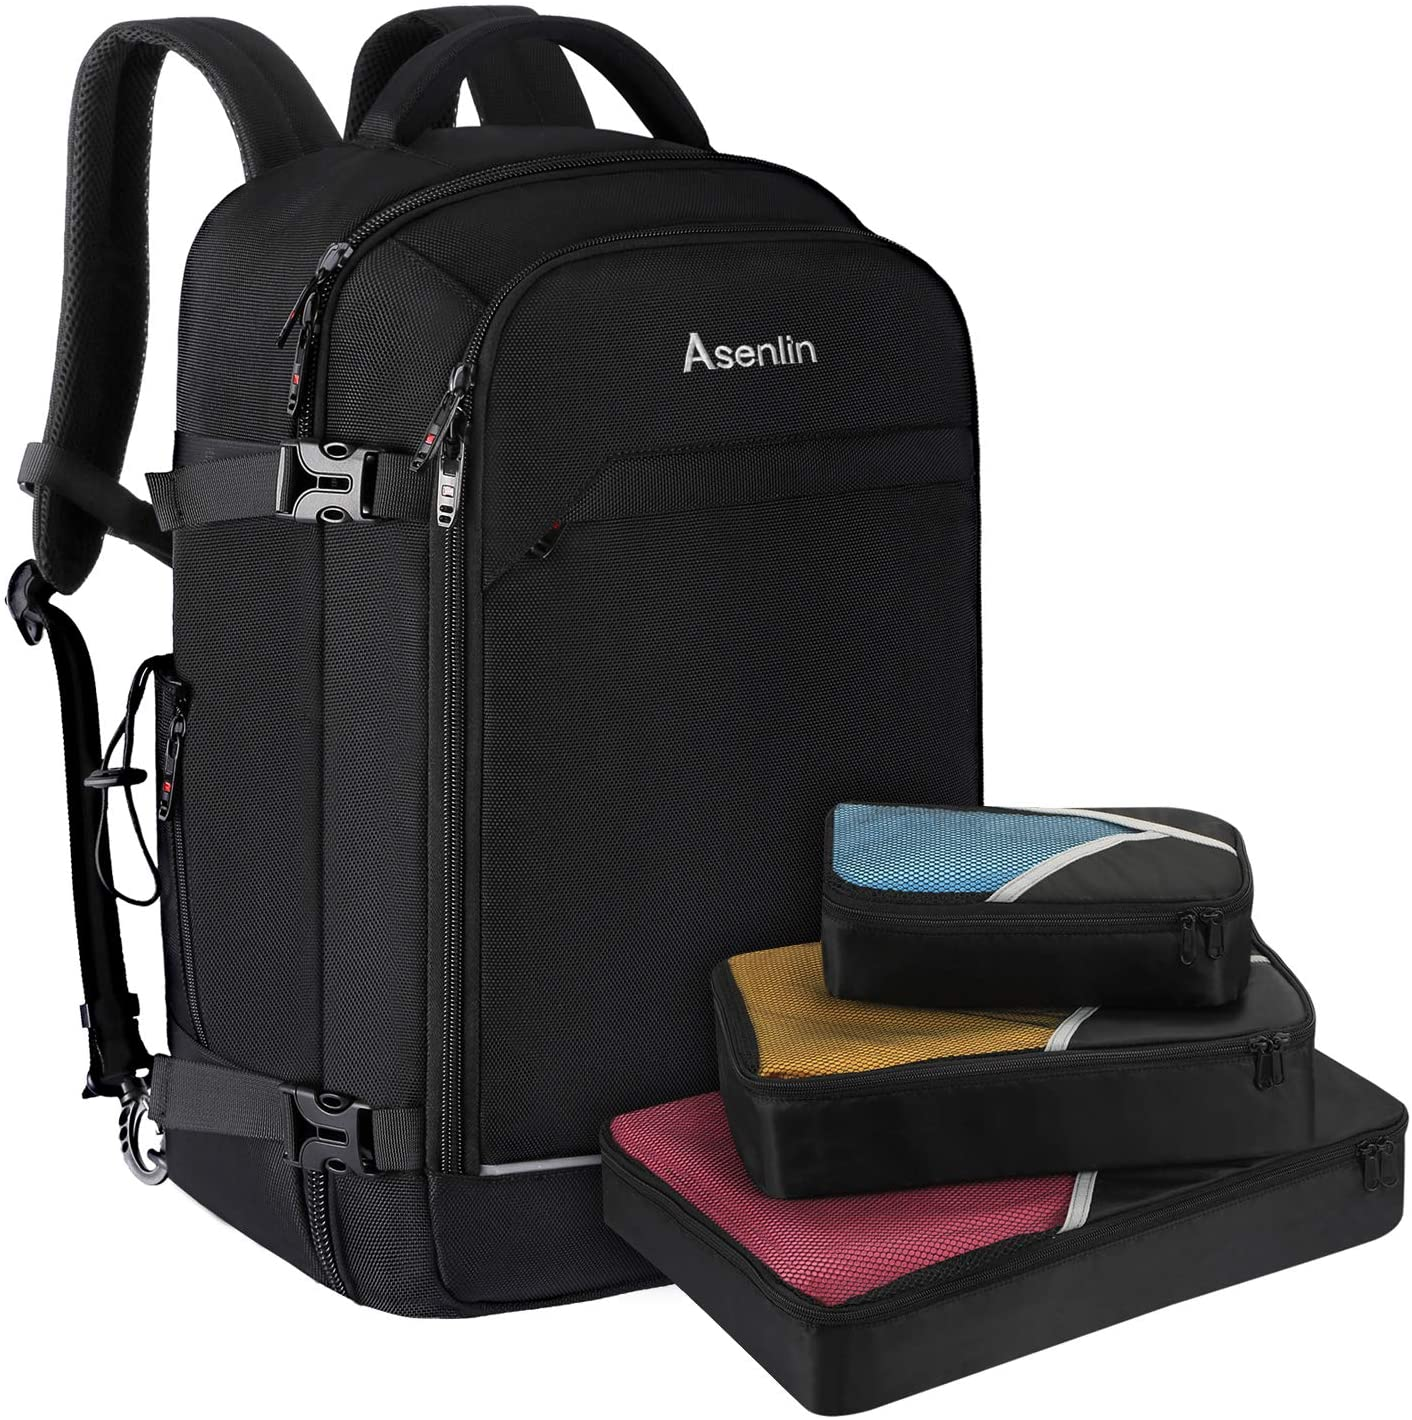 Asenlin 40L Travel Backpack